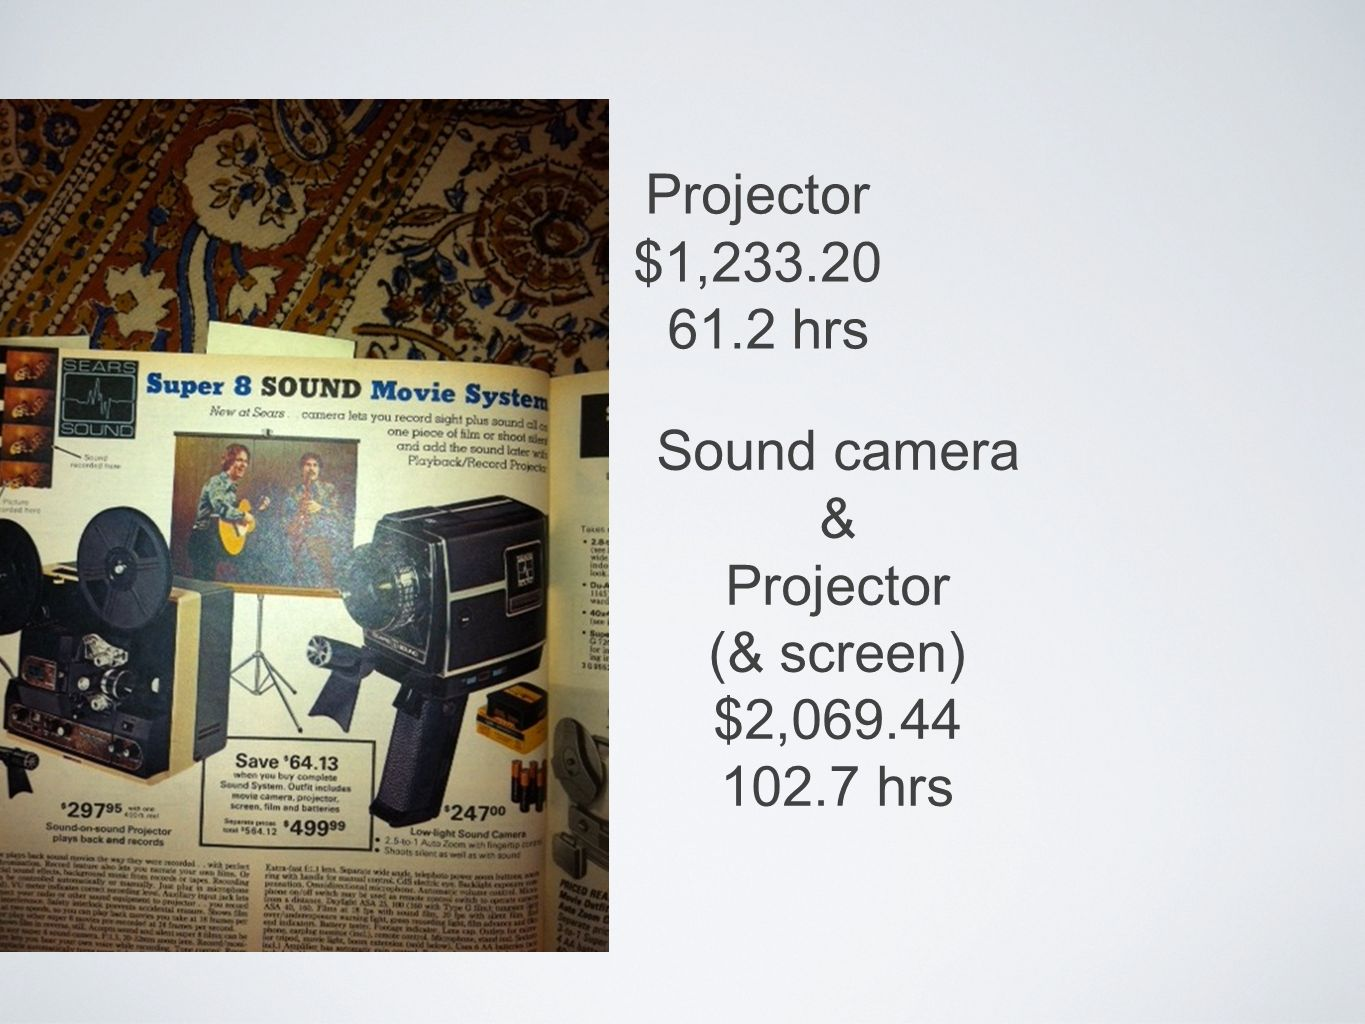 Projector $1,233.20 61.2 hrs Sound camera & Projector (& screen) $2,069.44 102.7 hrs